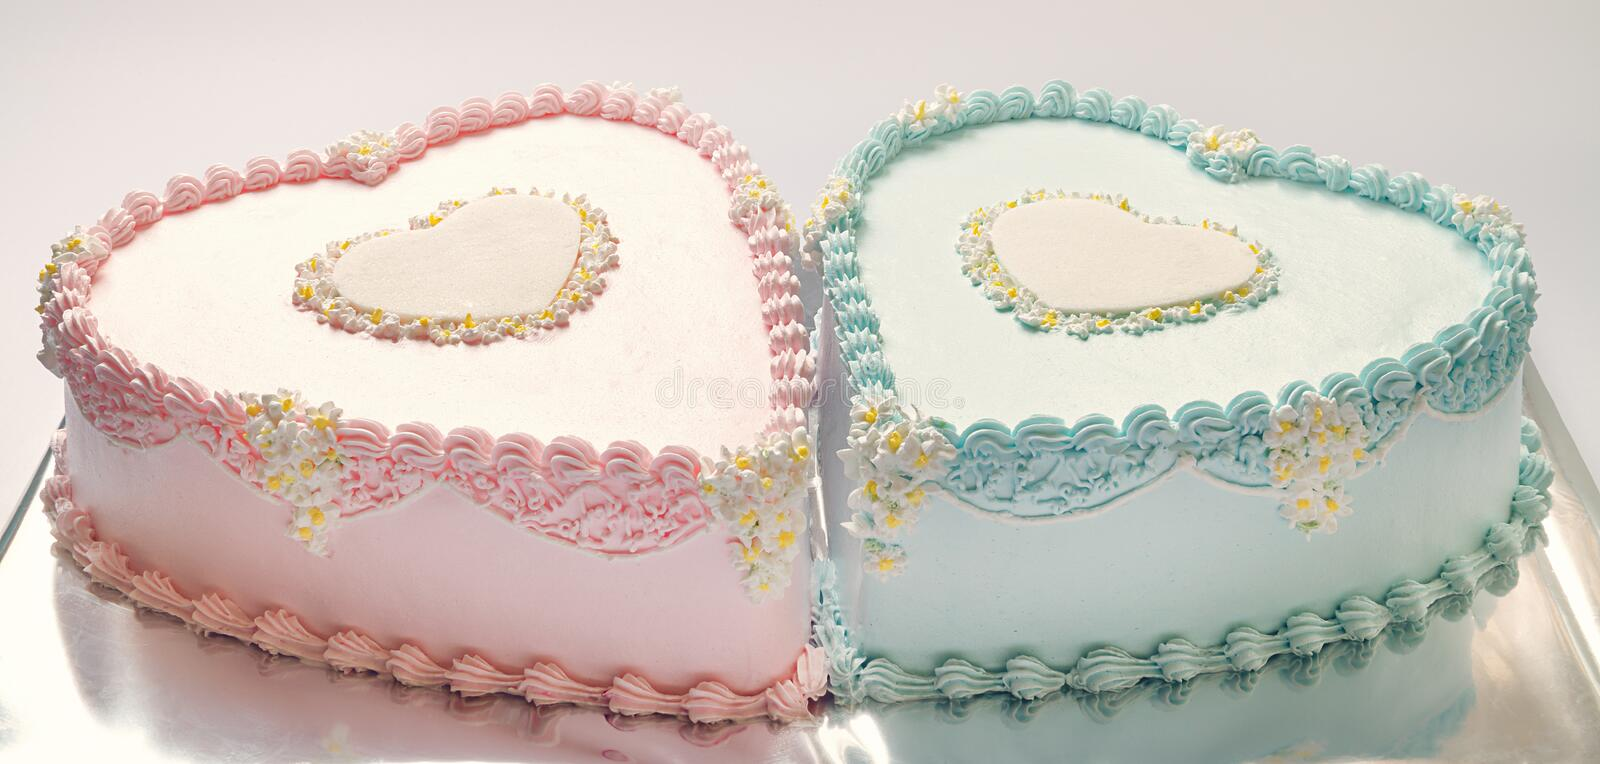 Birthday Cakes. For twins, for a boy and a girl, shape of hearts royalty free stock image